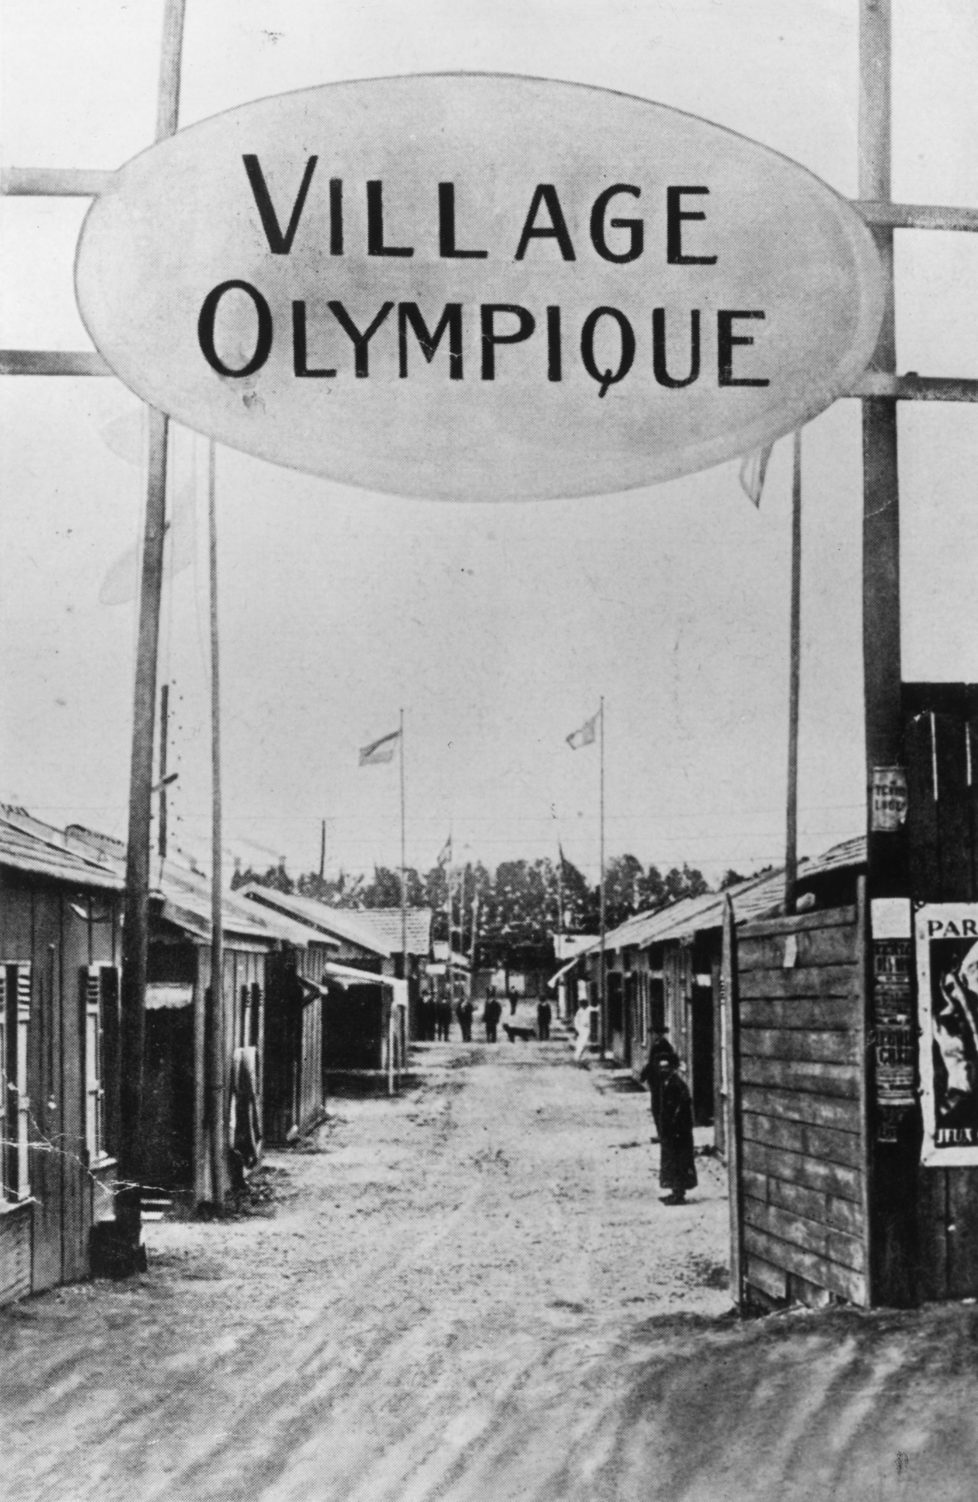 1924: The first ever Olympic Village, built for the 1924 games in Paris. (Photo by Hulton Archive/Getty Images)